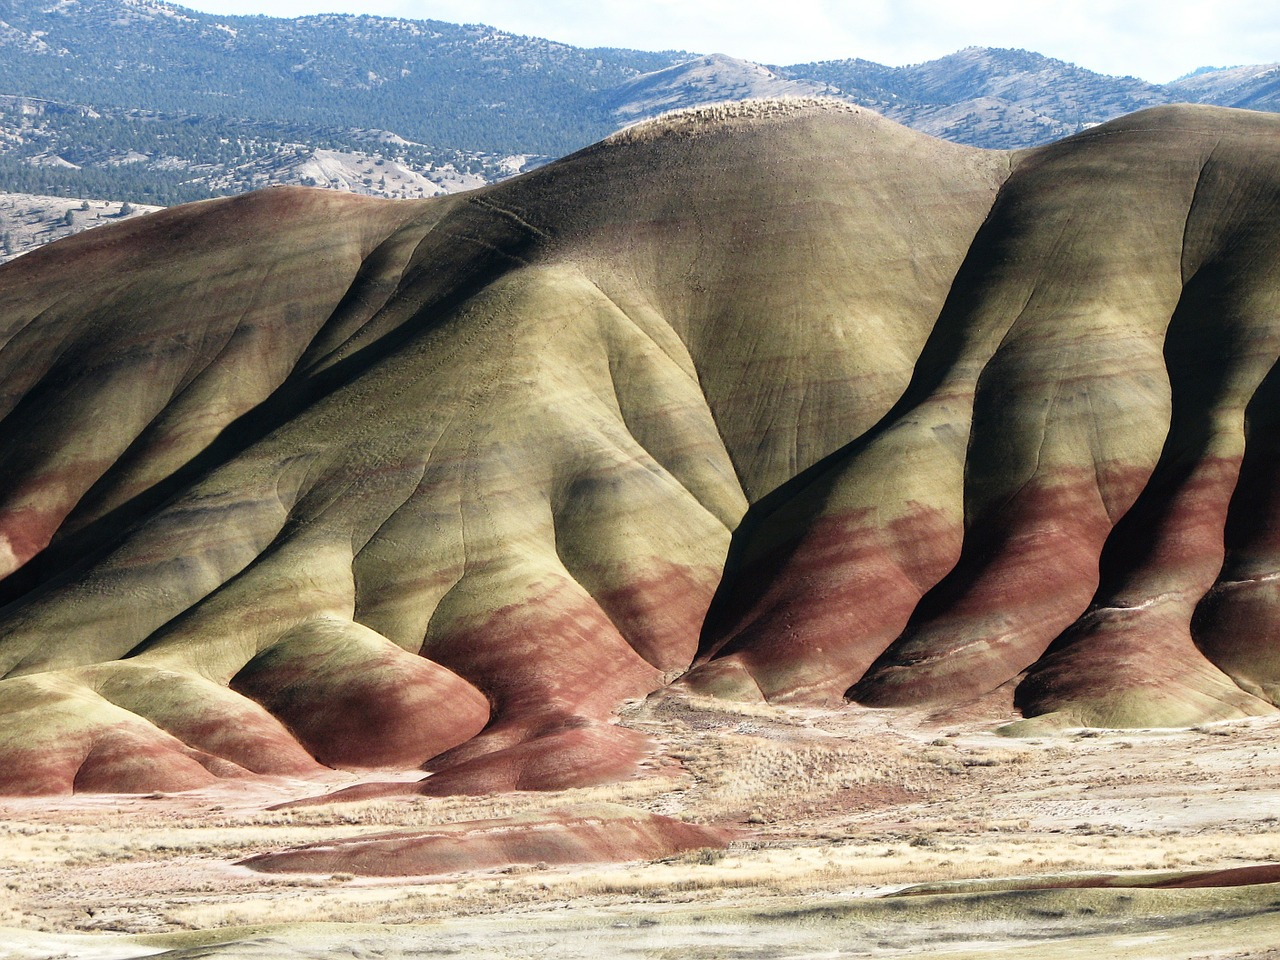 painted-hills-273451_1280